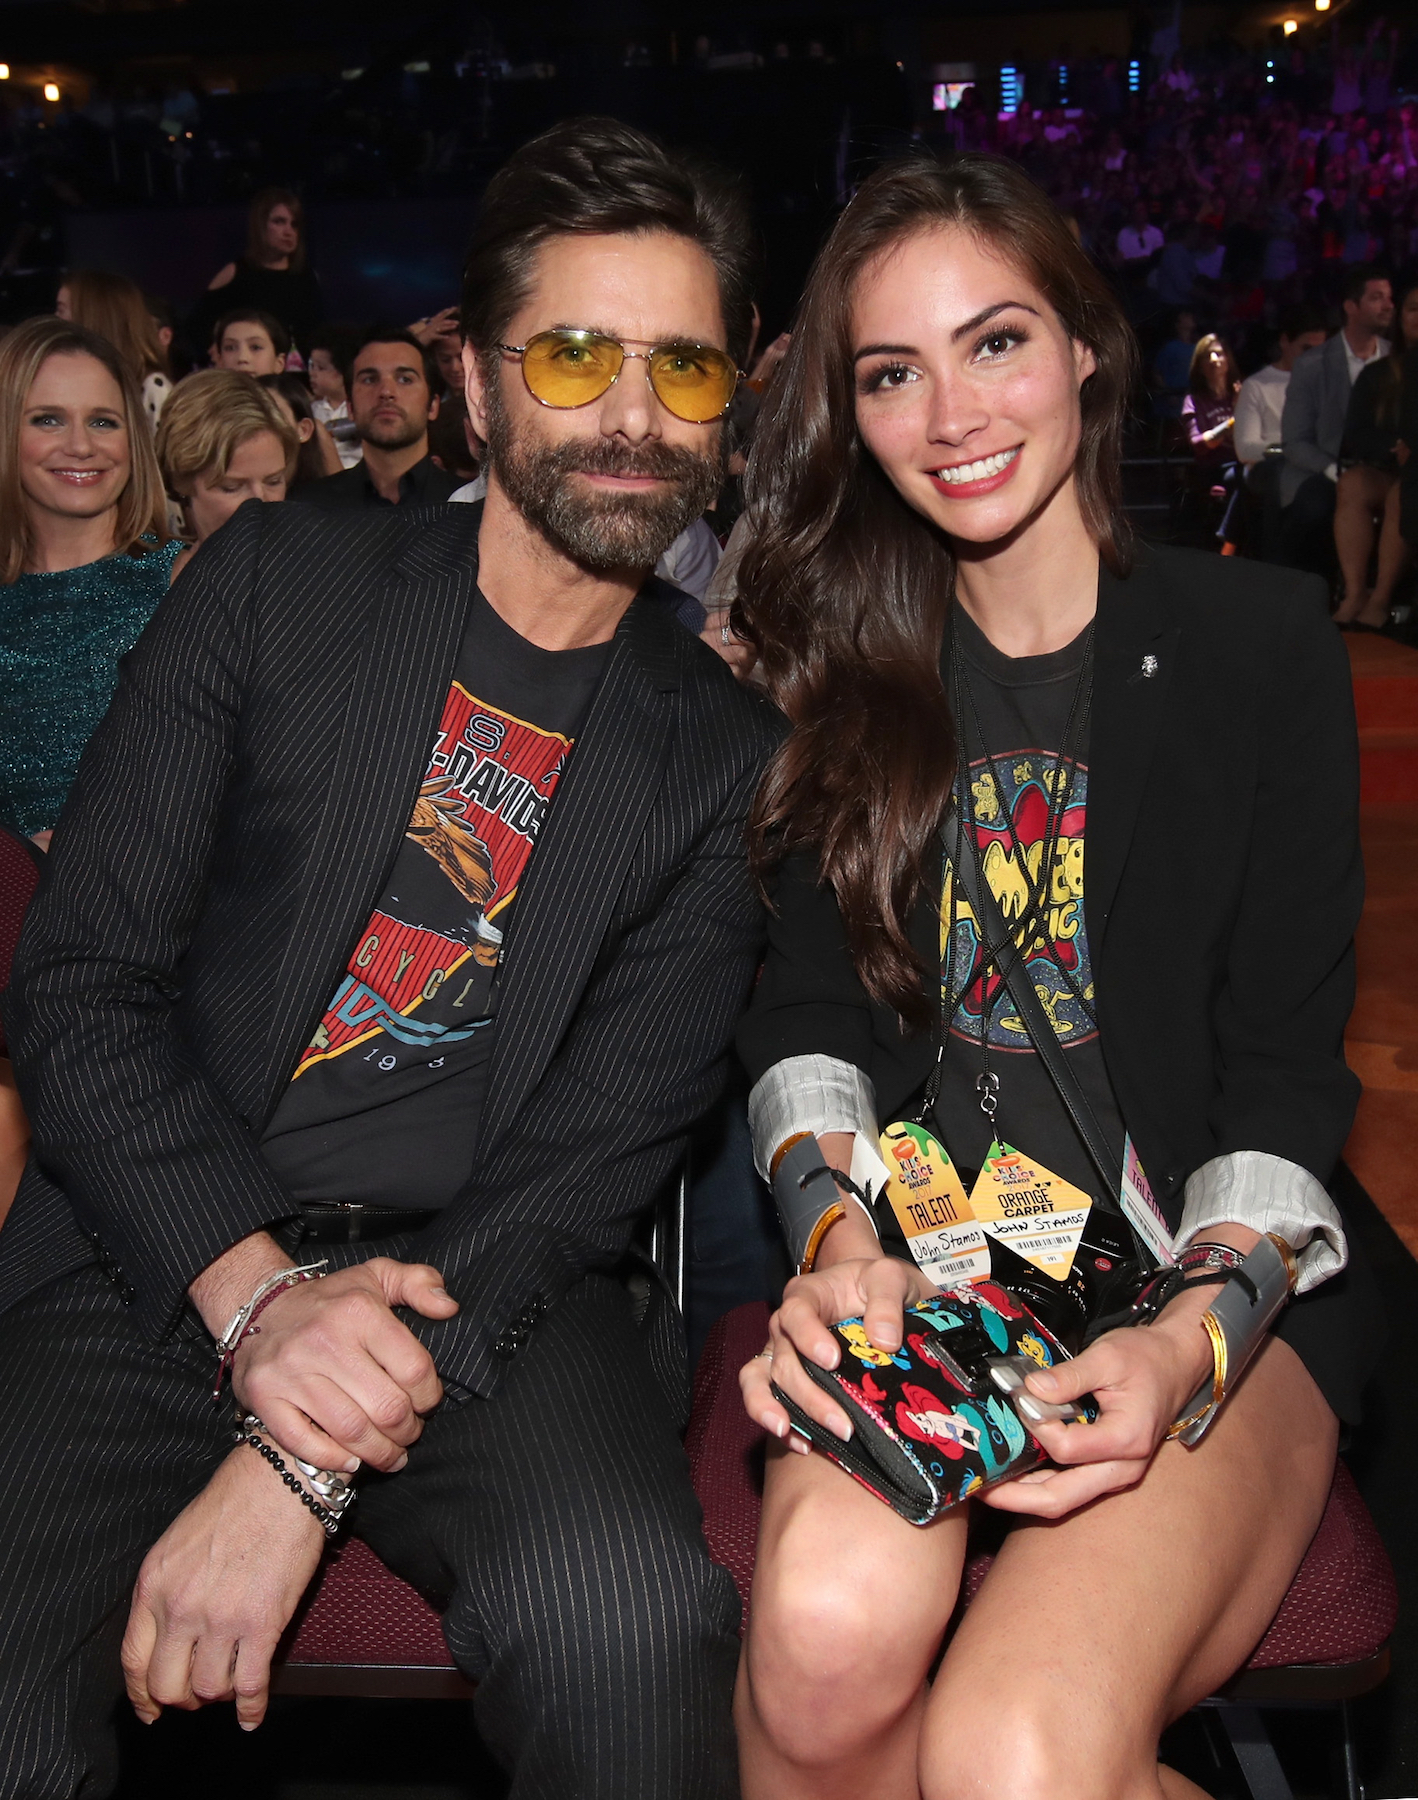 John Stamos announces engagement to girlfriend of almost two years